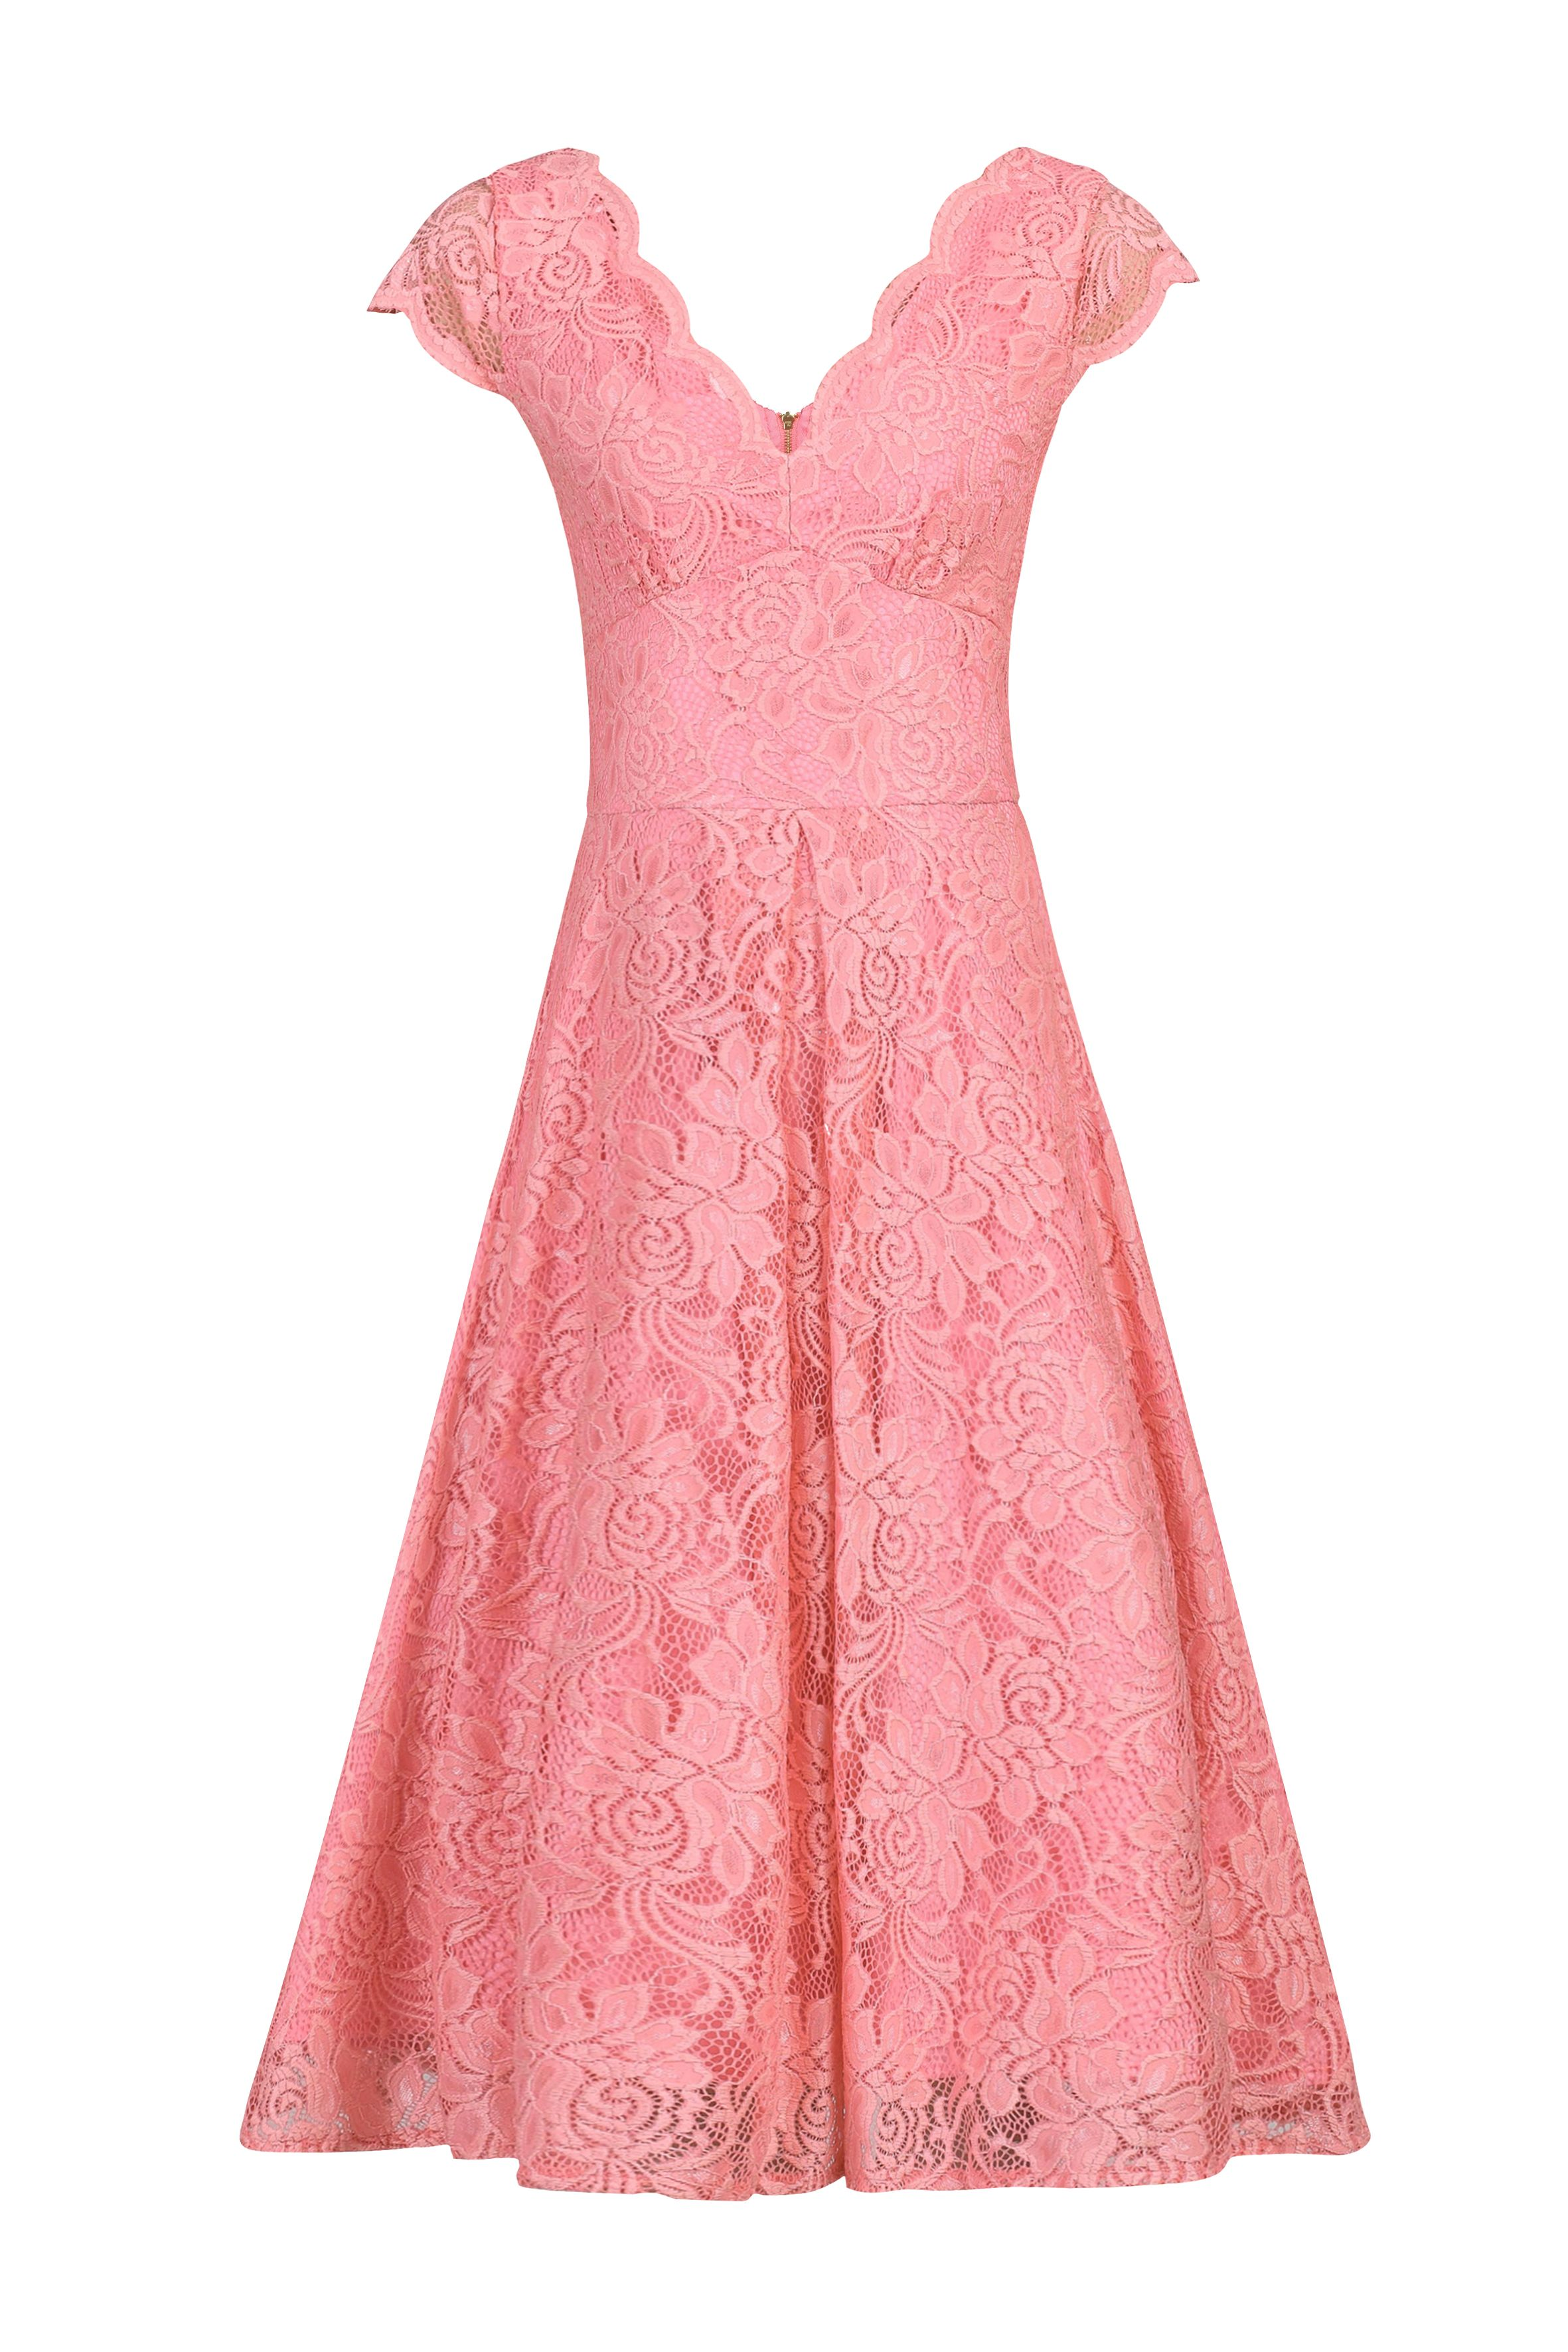 Jolie Moi Cap Sleeve Scalloped Dress, Pink